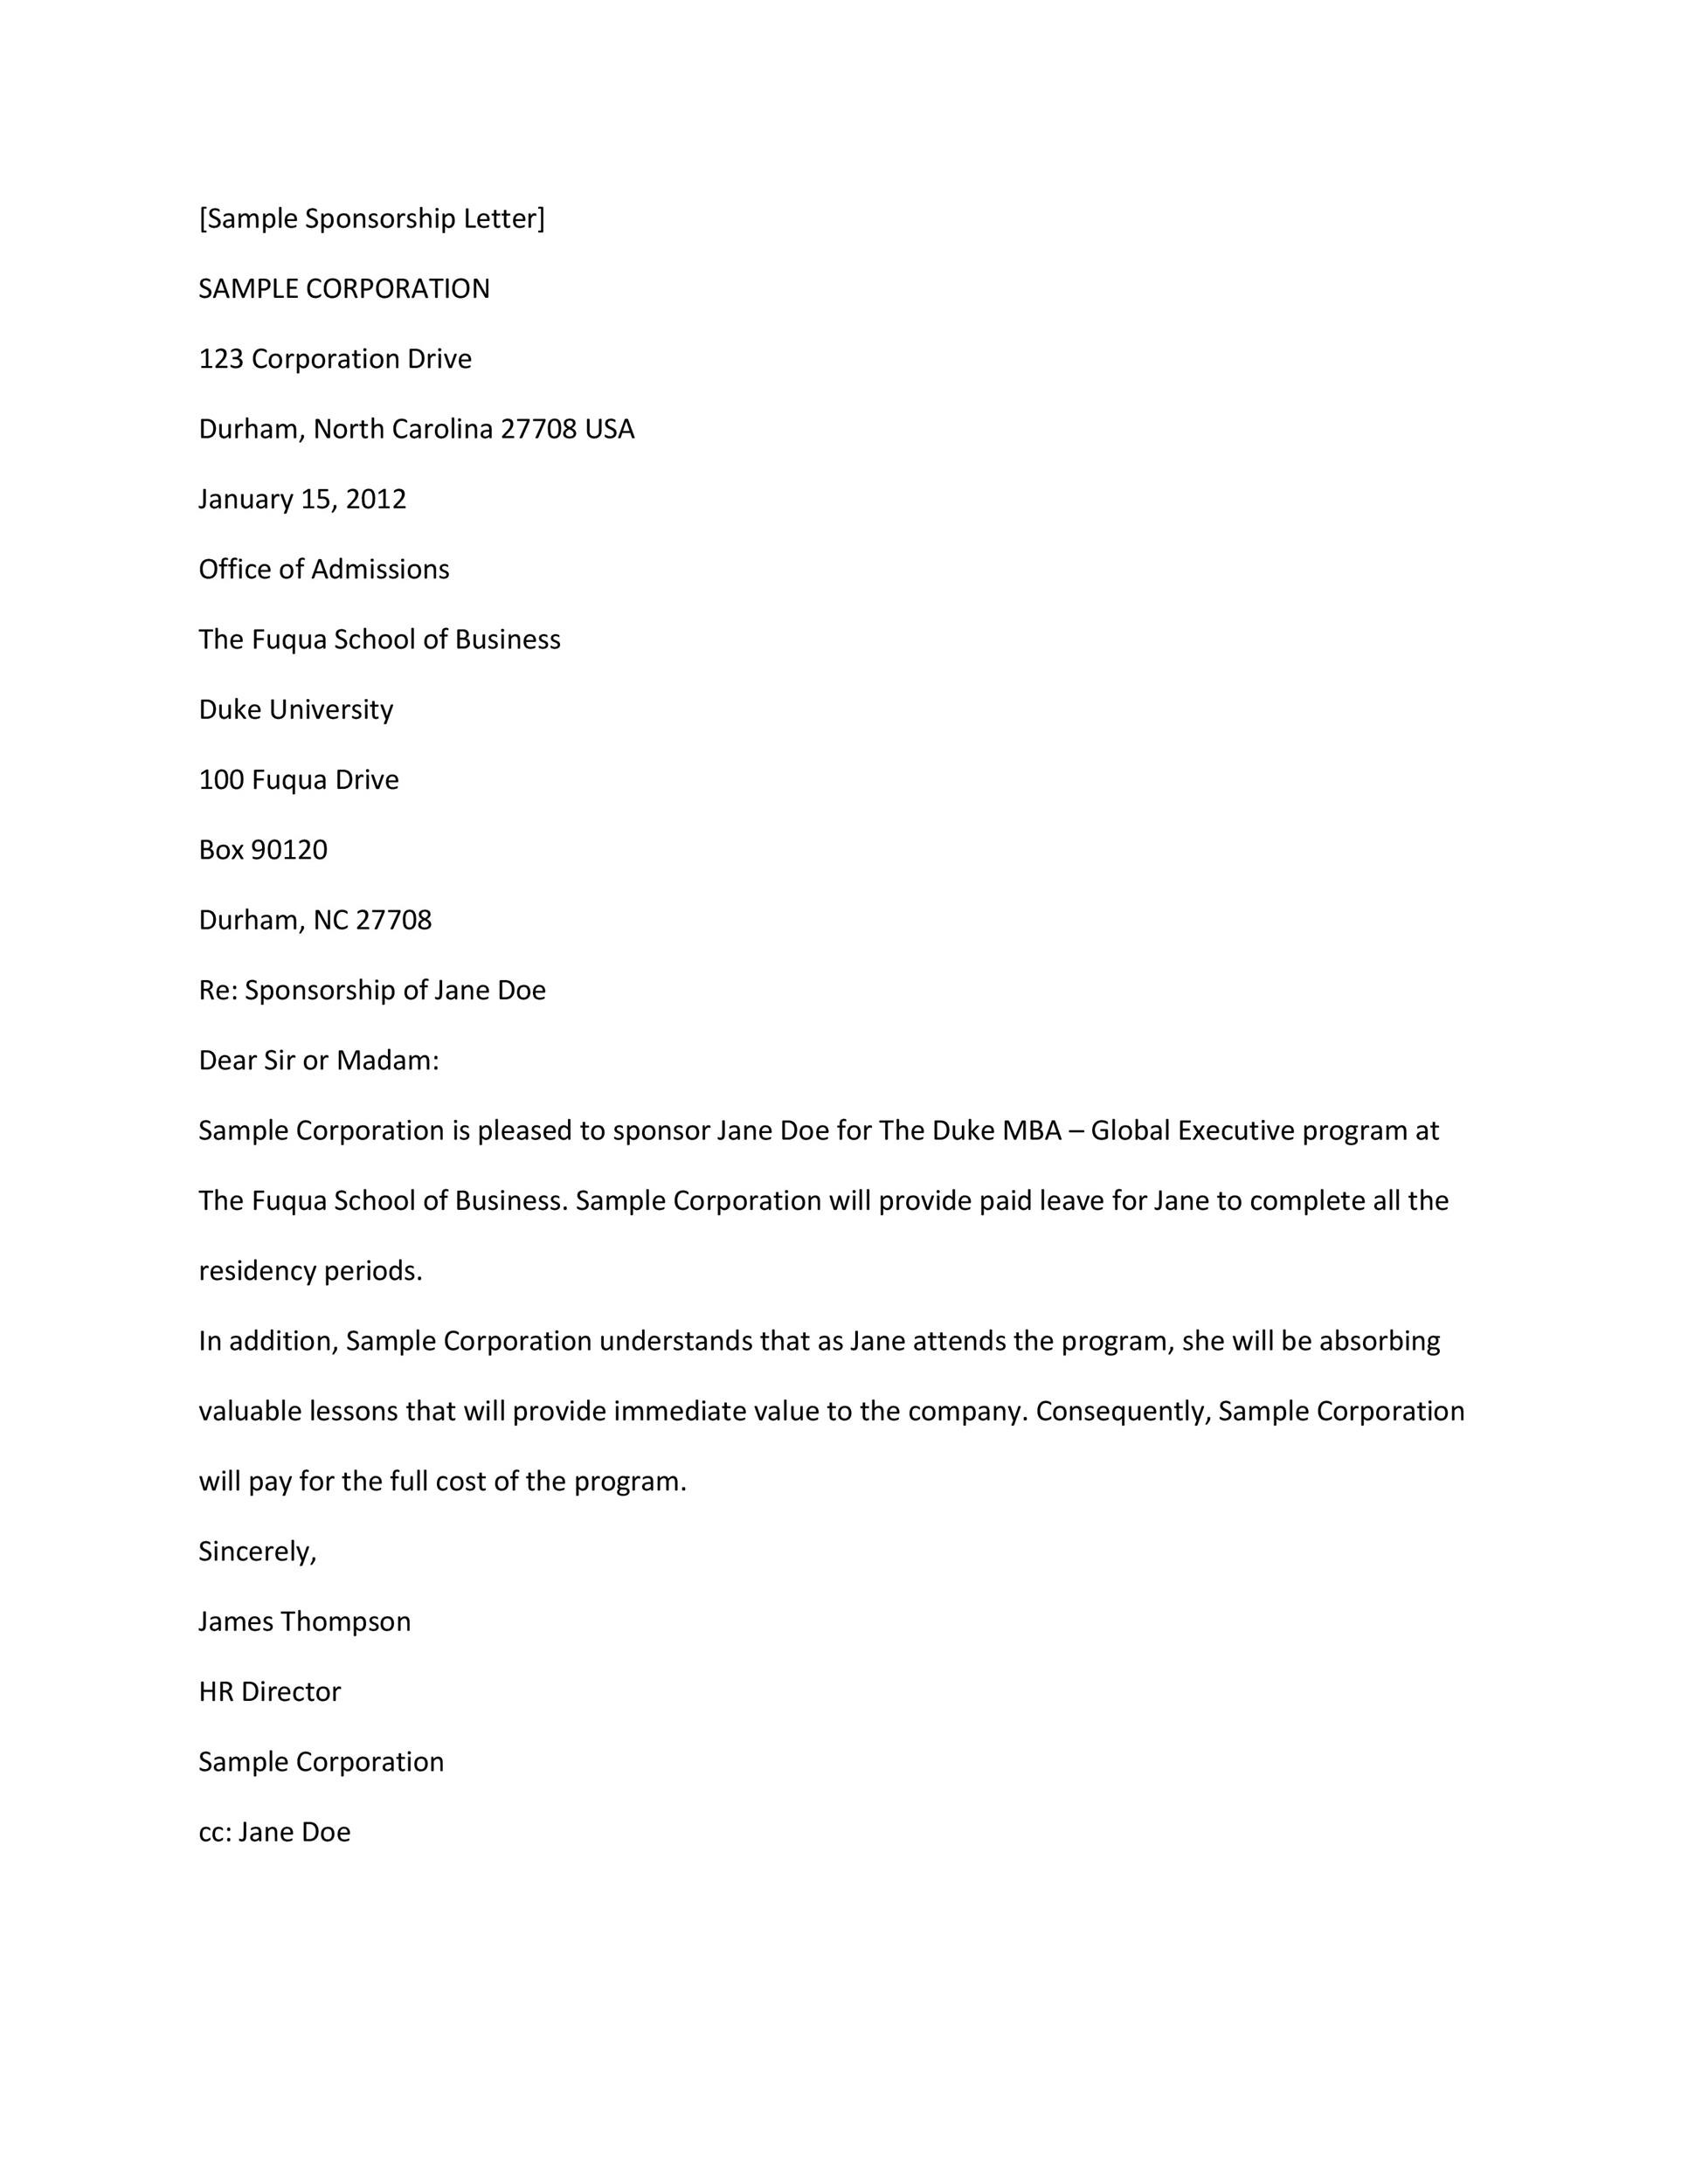 40 Sponsorship Letter Sponsorship Proposal Templates – Letter for Sponsorship for Event